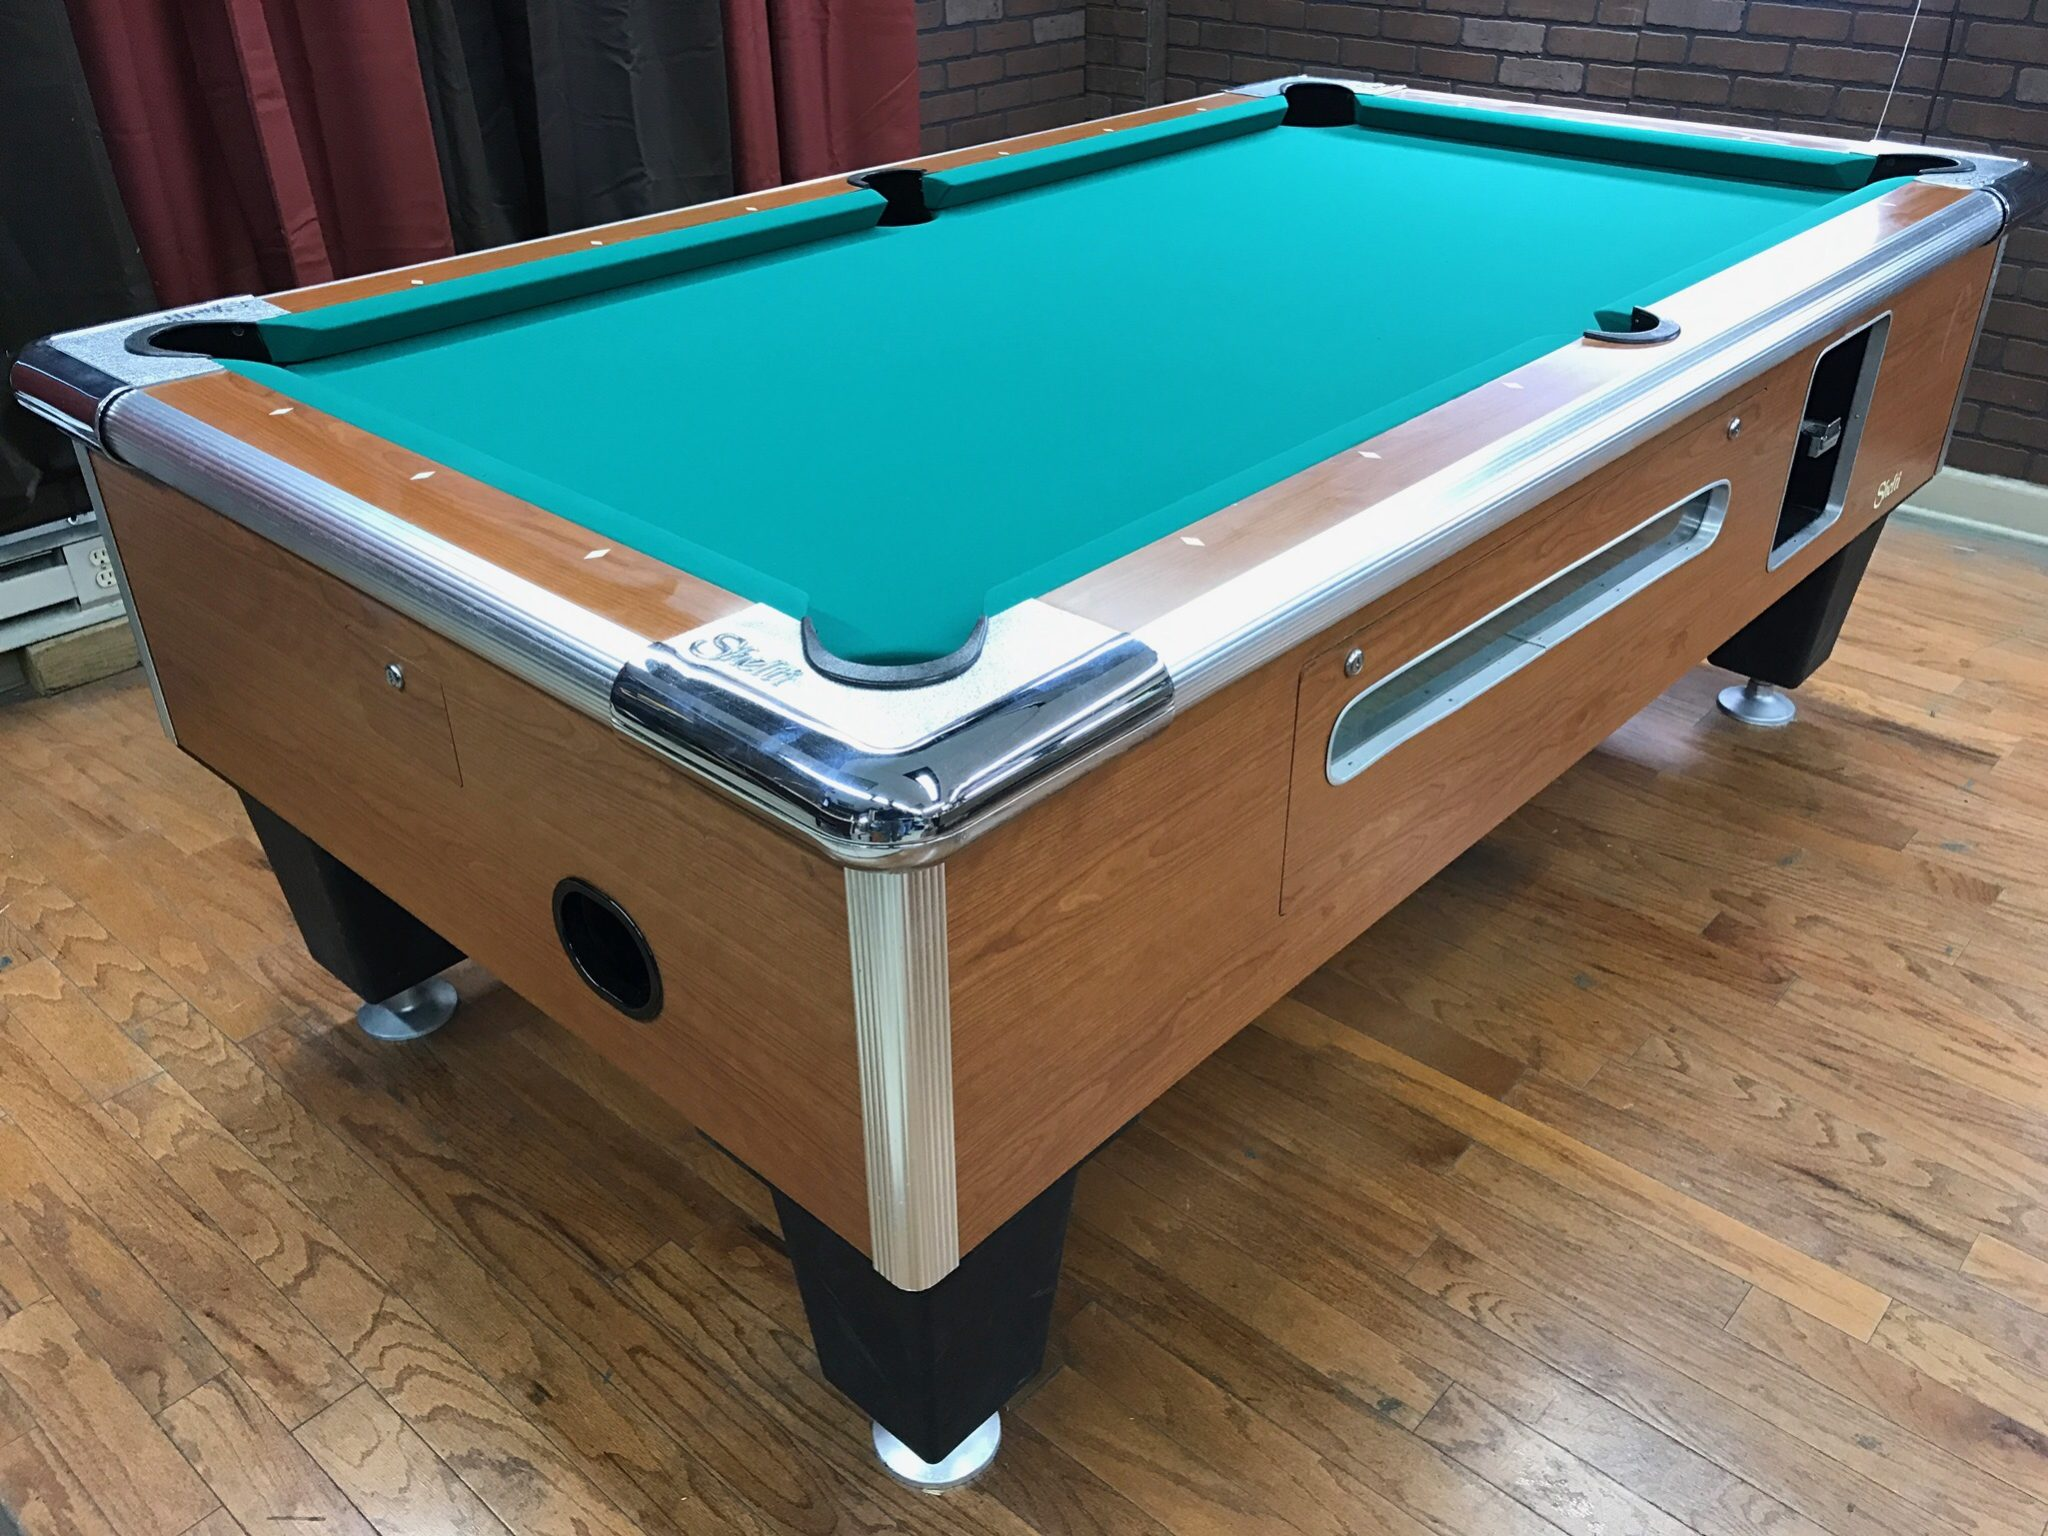 table 0412117 shelti used coin operated pool table used coin rh barpooltables net coin operated pool tables uk coin operated pool tables for rent